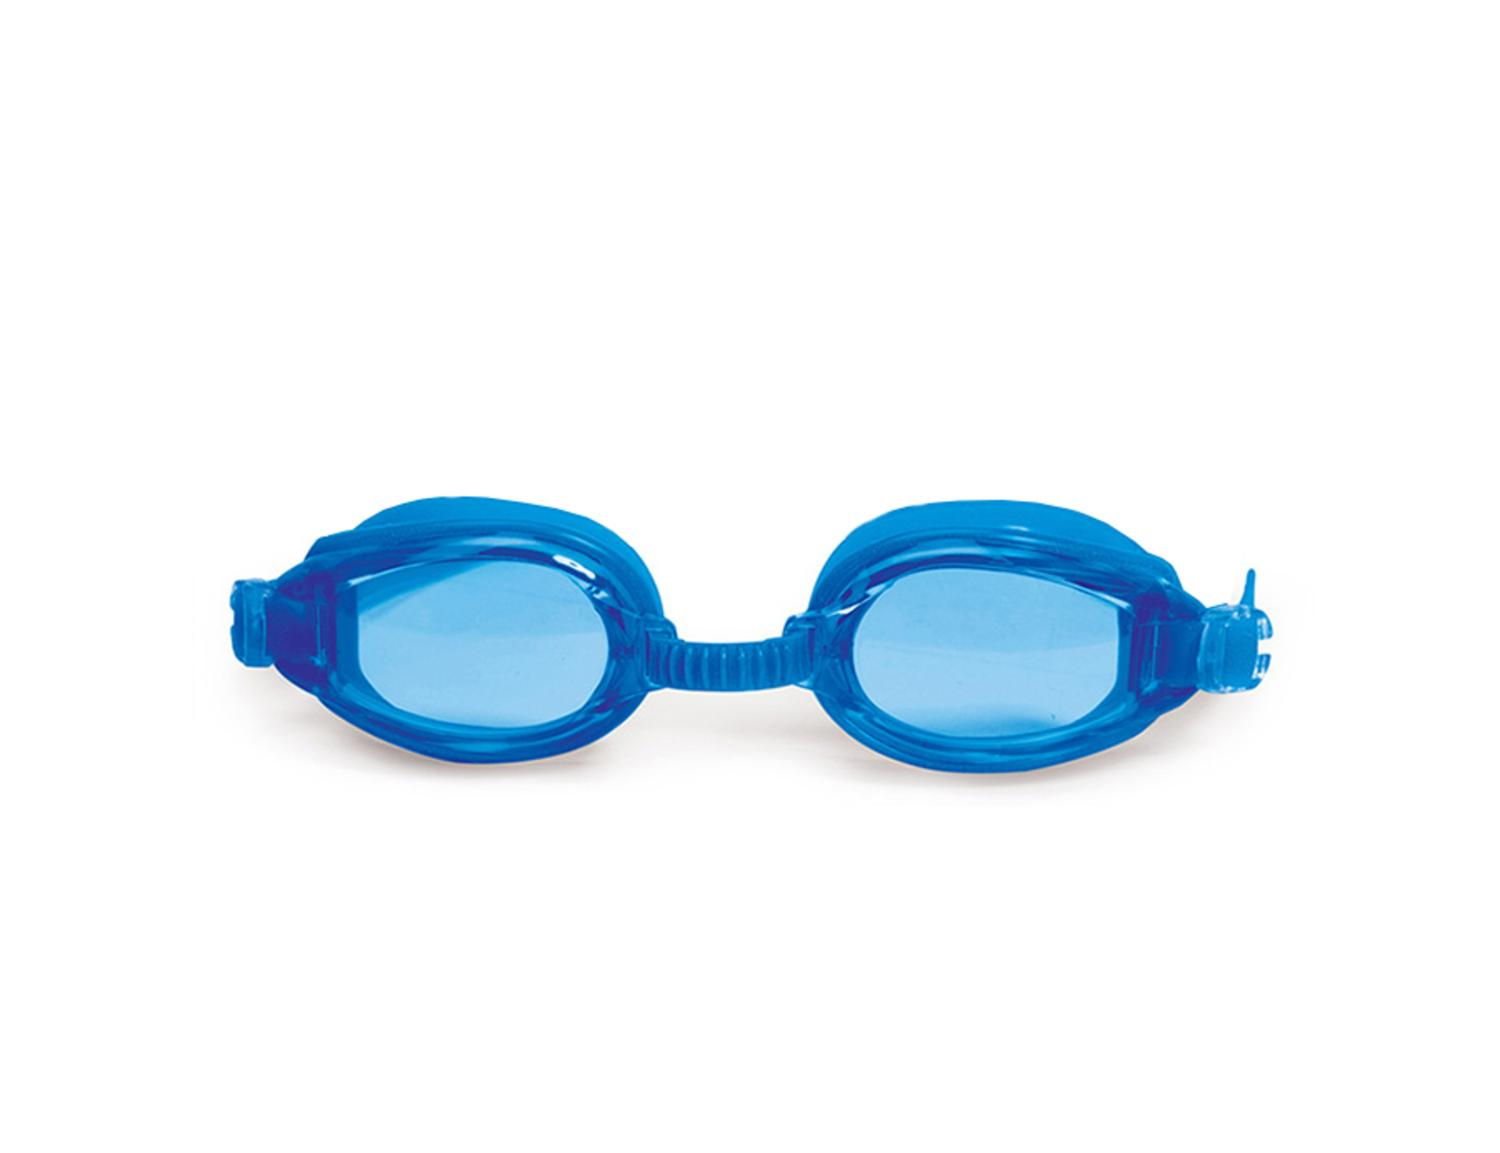 "6.25"" Advantage Blue Goggles Swimming Pool Accessory for Juniors by Swim Central"